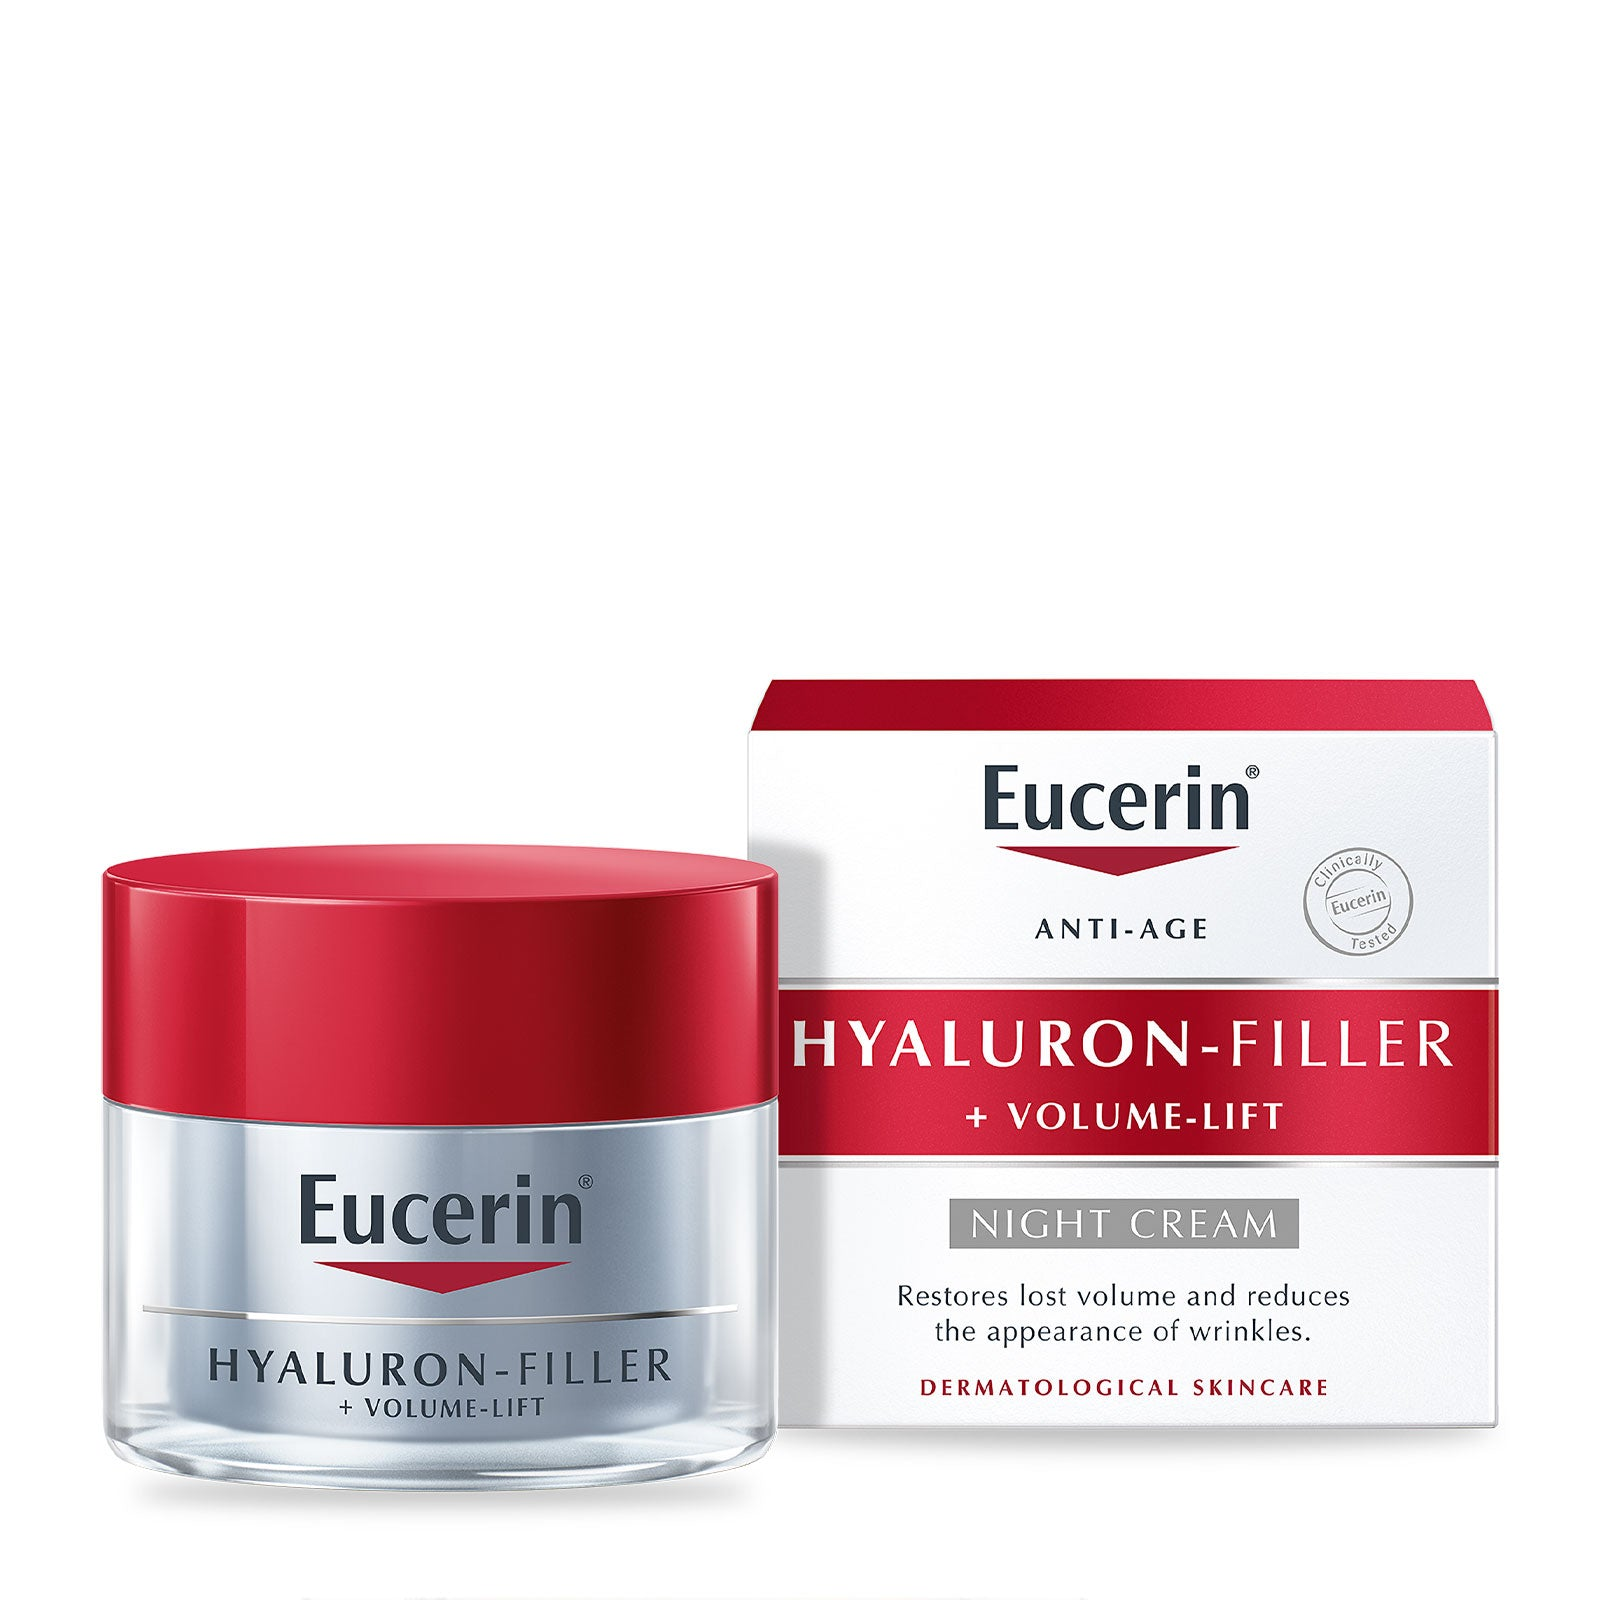 Eucerin Anti-Age Volume-Filler Night Cream 50ml